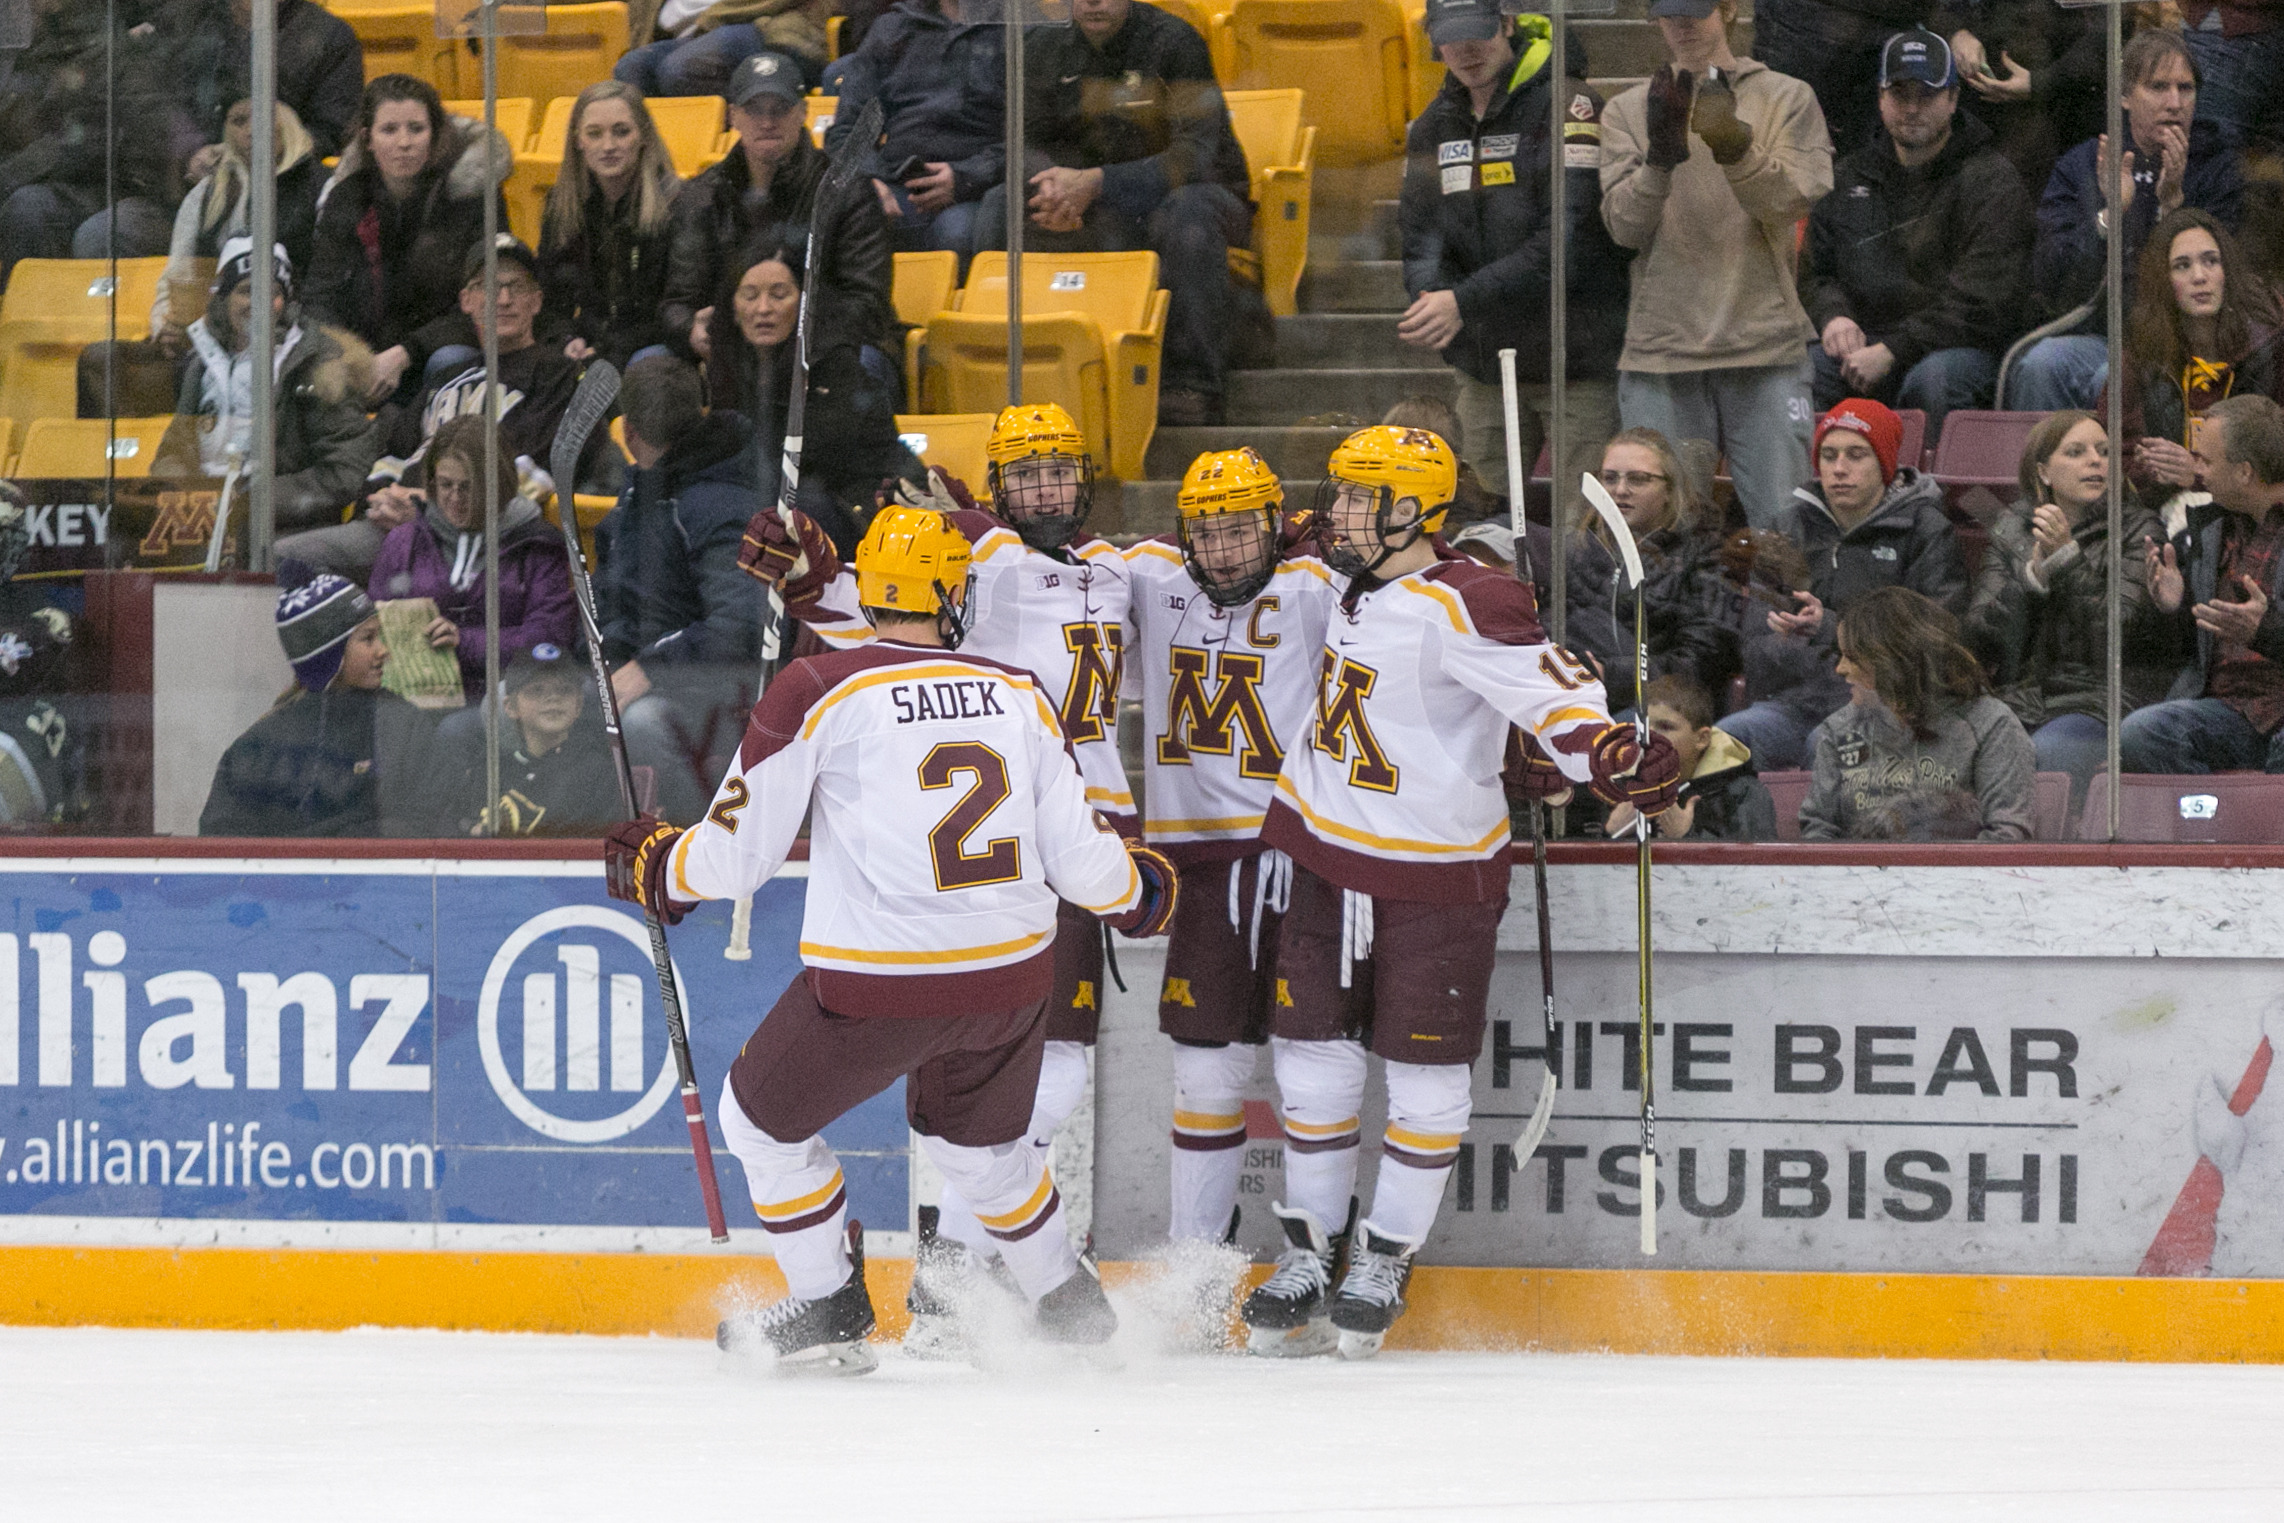 Gophers Return to B1G Play with Michigan - University of